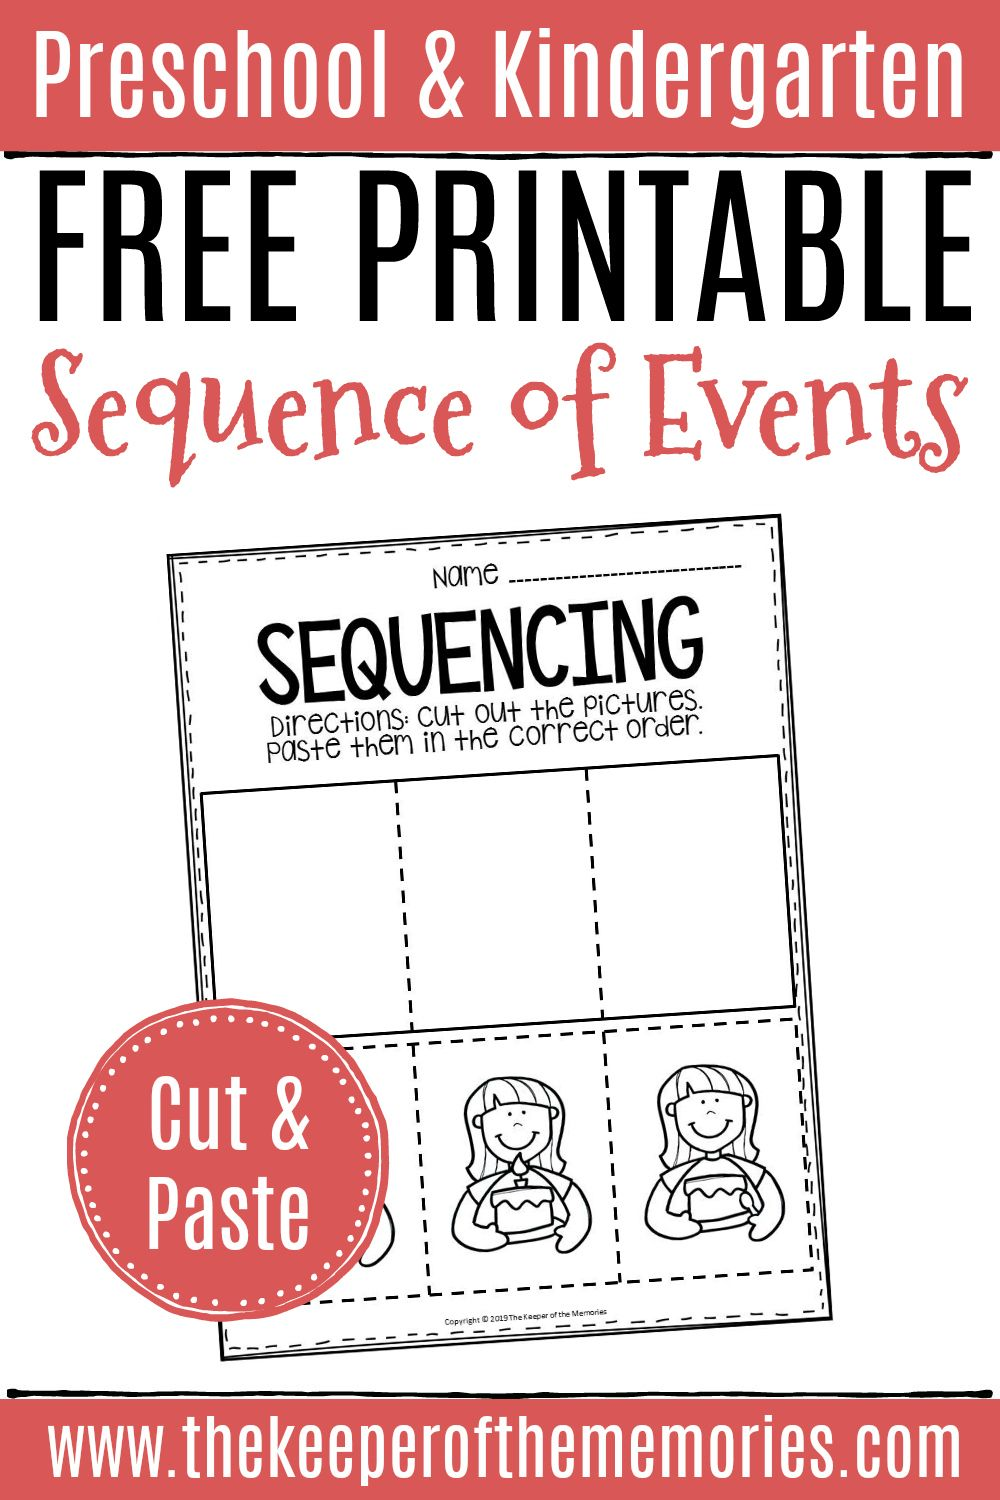 Free Printable Sequence Of Events Worksheets Sequencing Worksheets Kindergarten Sequencing Worksheets Kindergarten Worksheets Printable